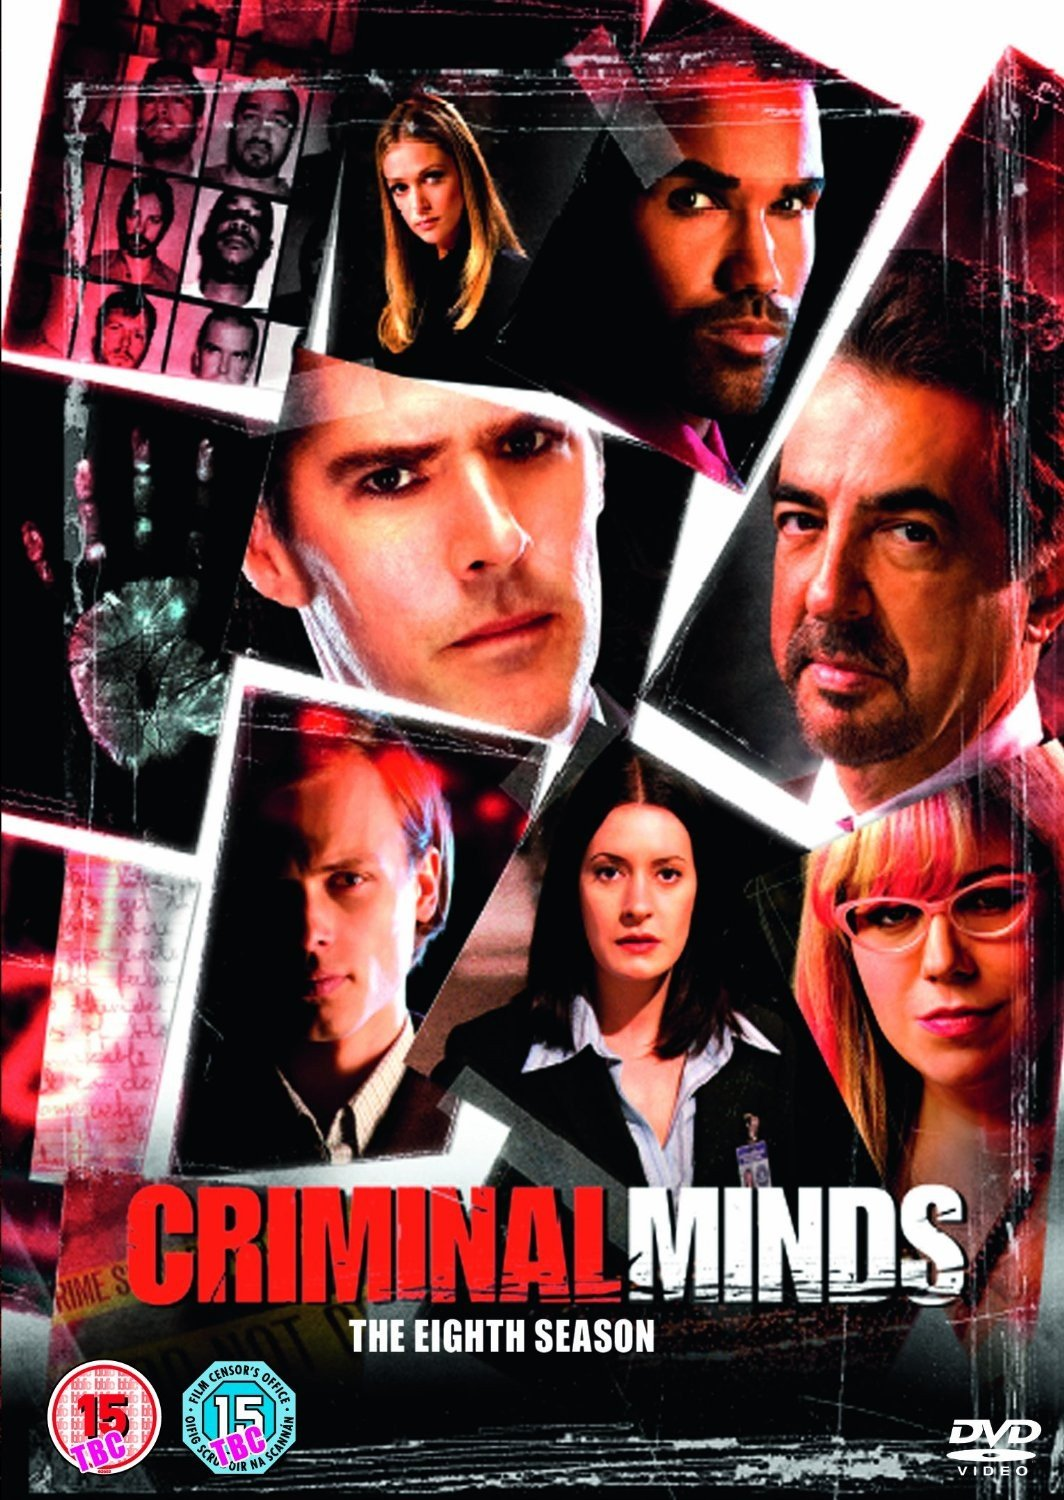 Criminal Minds (Season 8) 犯罪心理 第八季